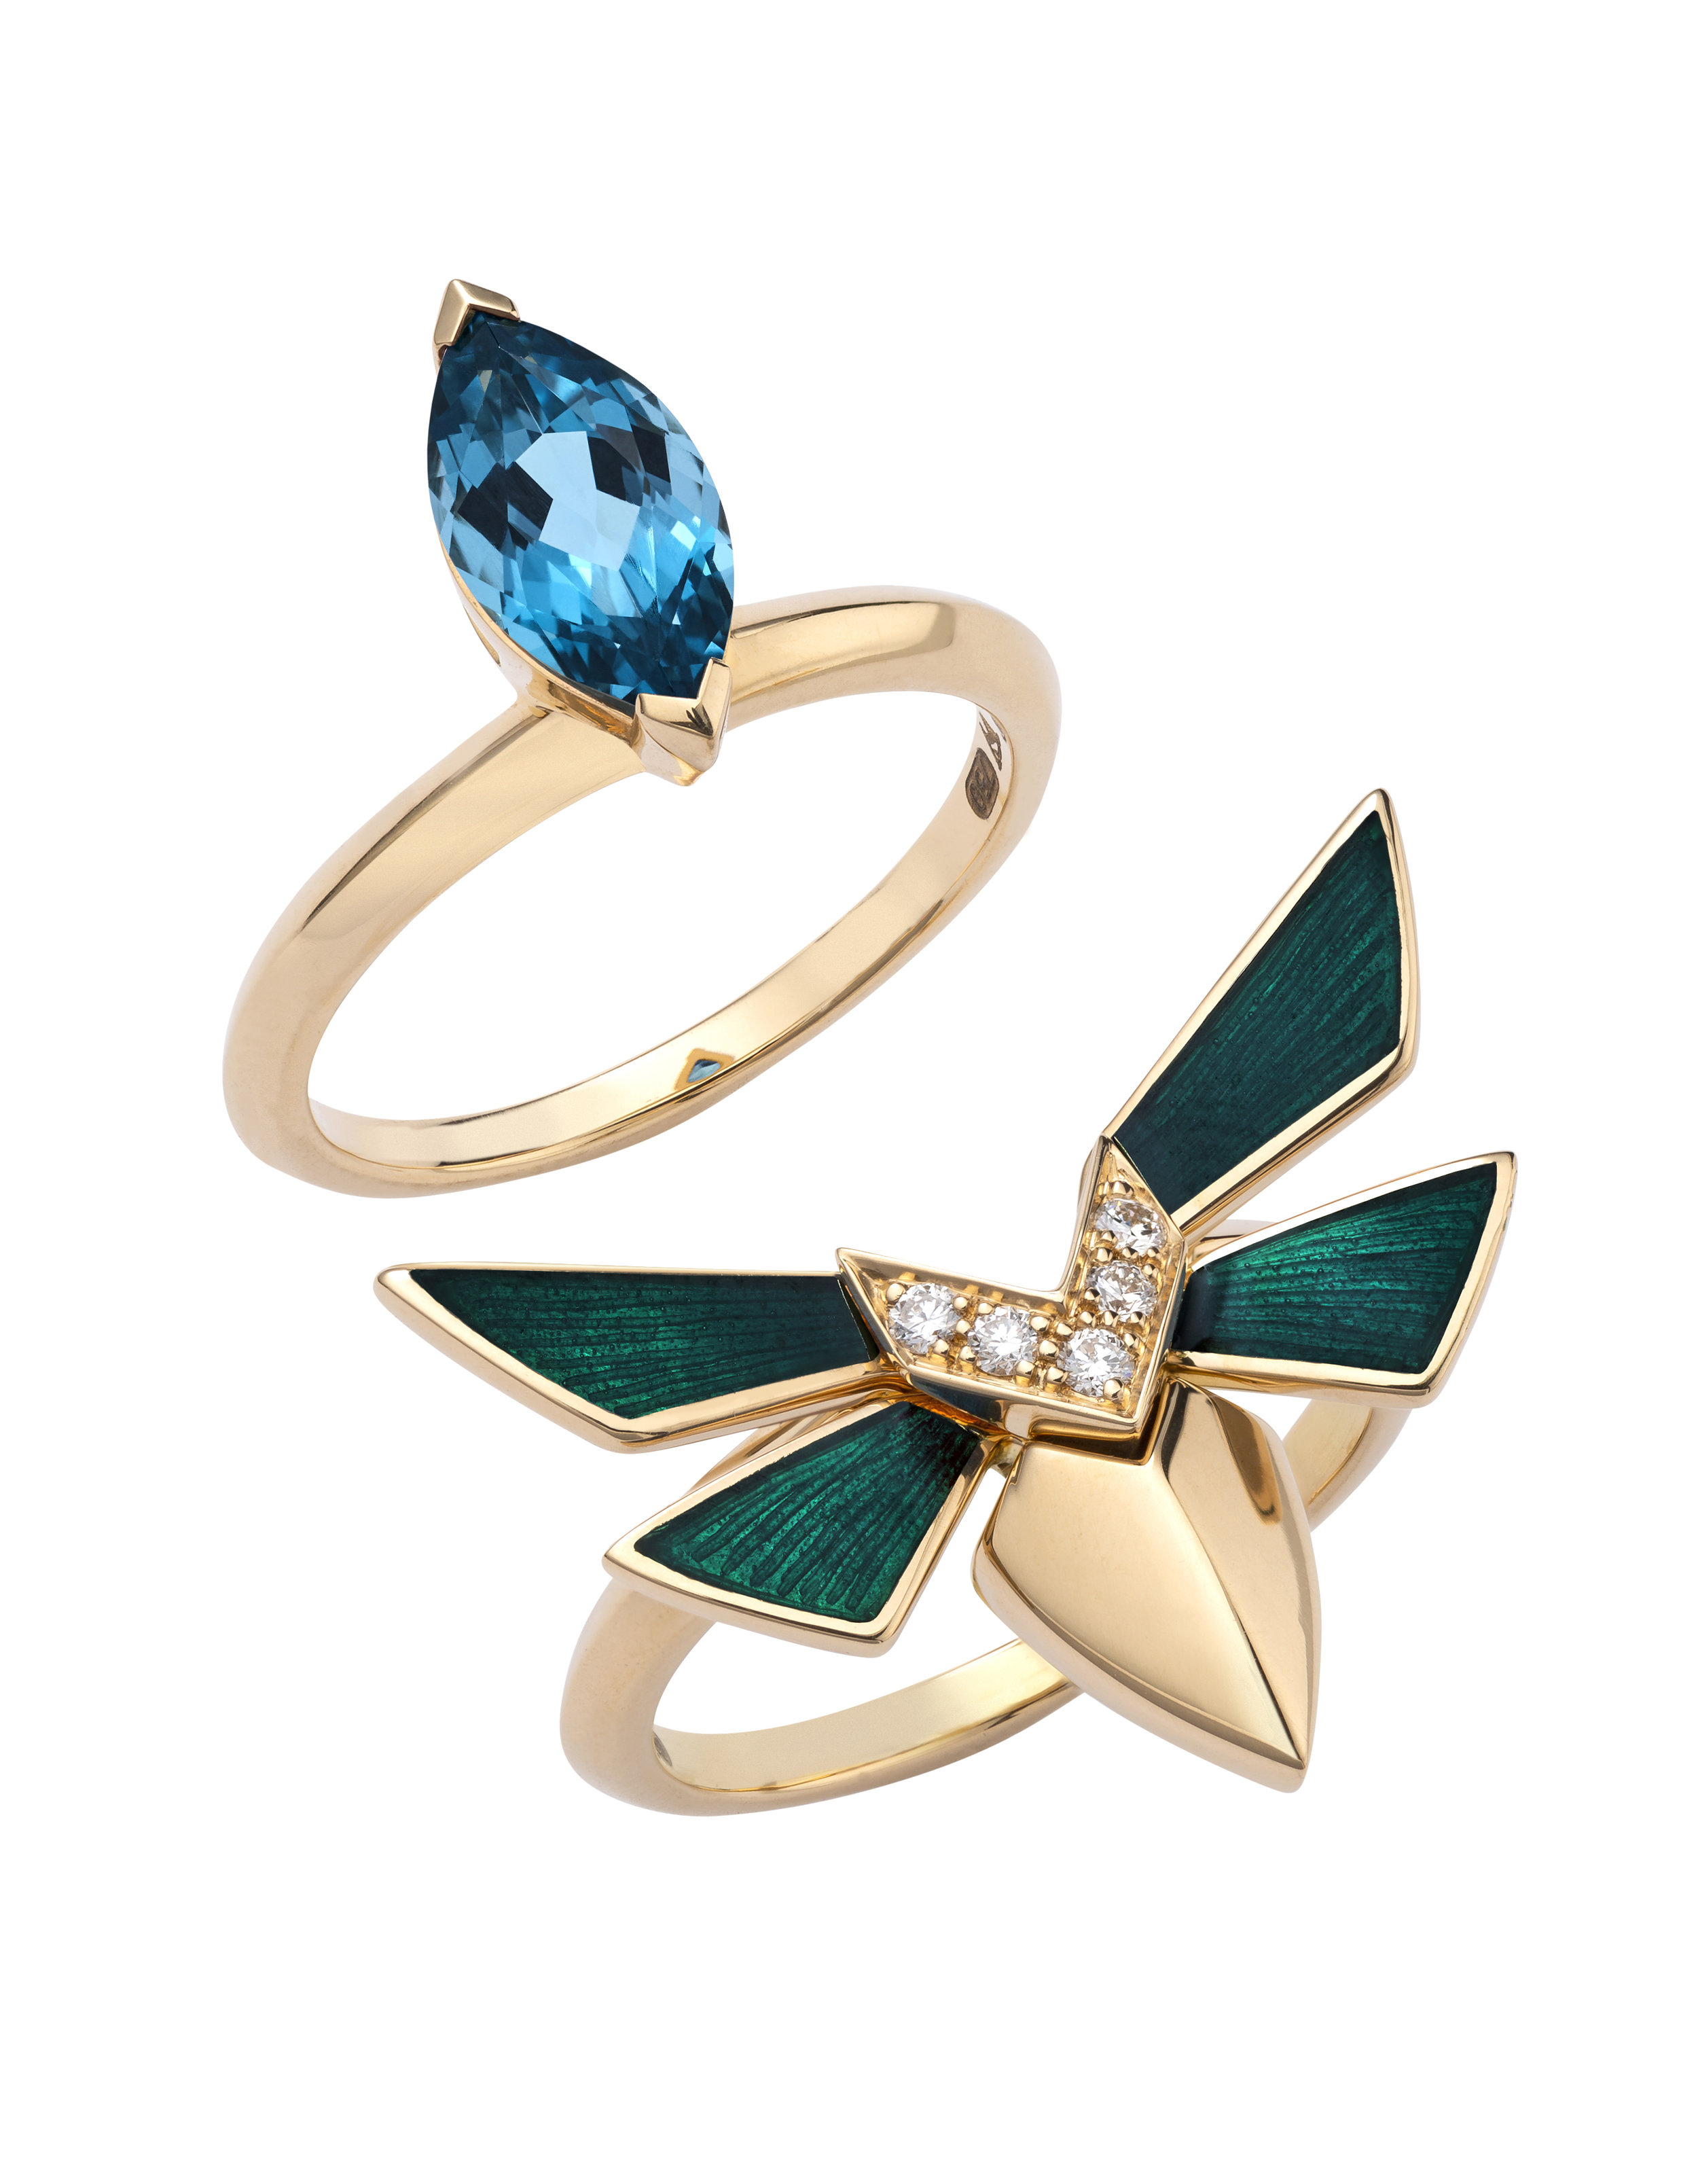 STEPHEN WEBSTER JEWELLERY | Jitterbug Stacking Ring, Blue Topaz Inner; $1,450 and Green Enamel White Diamond Pave Outer; $2,950 |